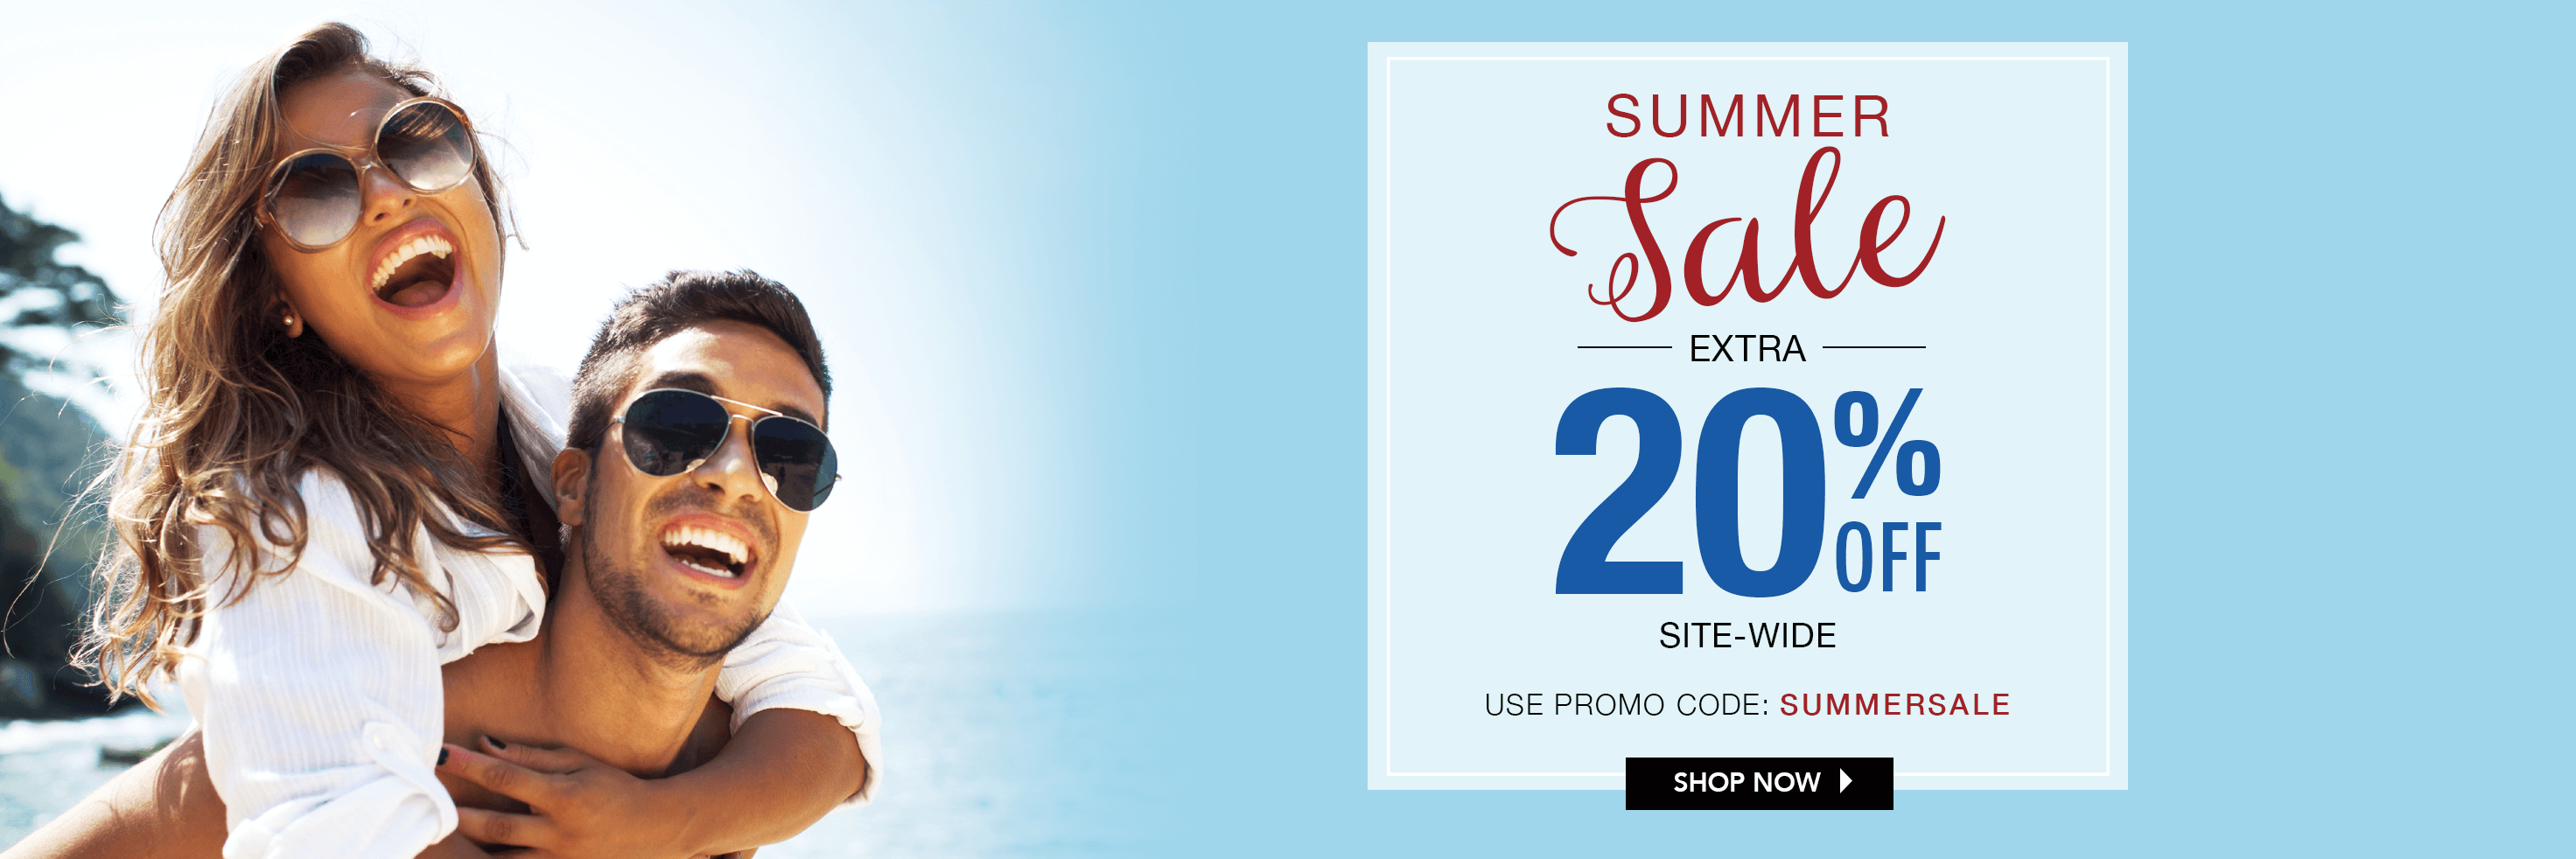 Use PROMO CODE: SUMMER SALE for an extra 20% OFF!